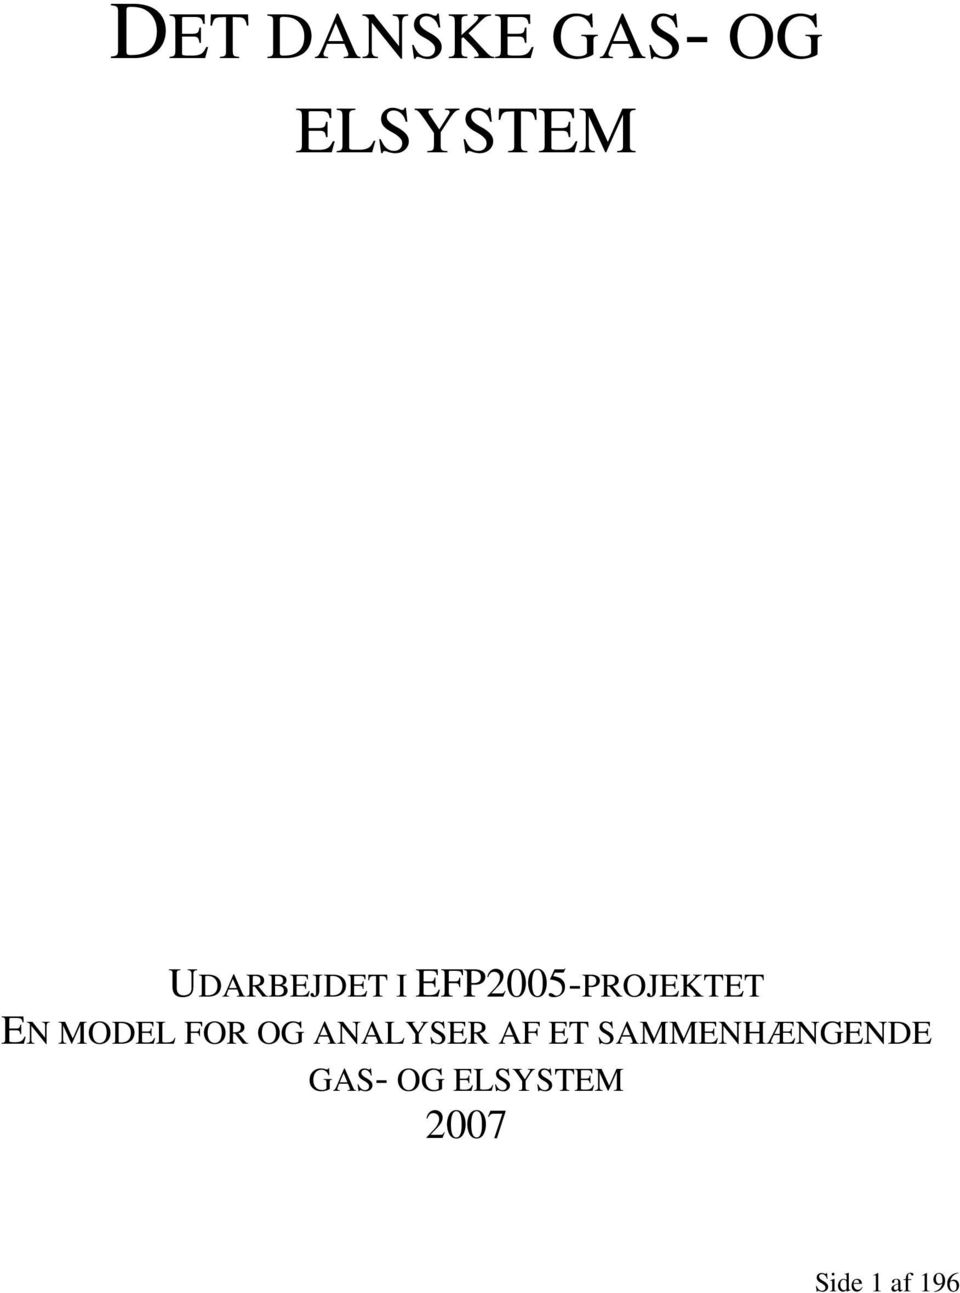 MODEL FOR OG ANALYSER AF ET